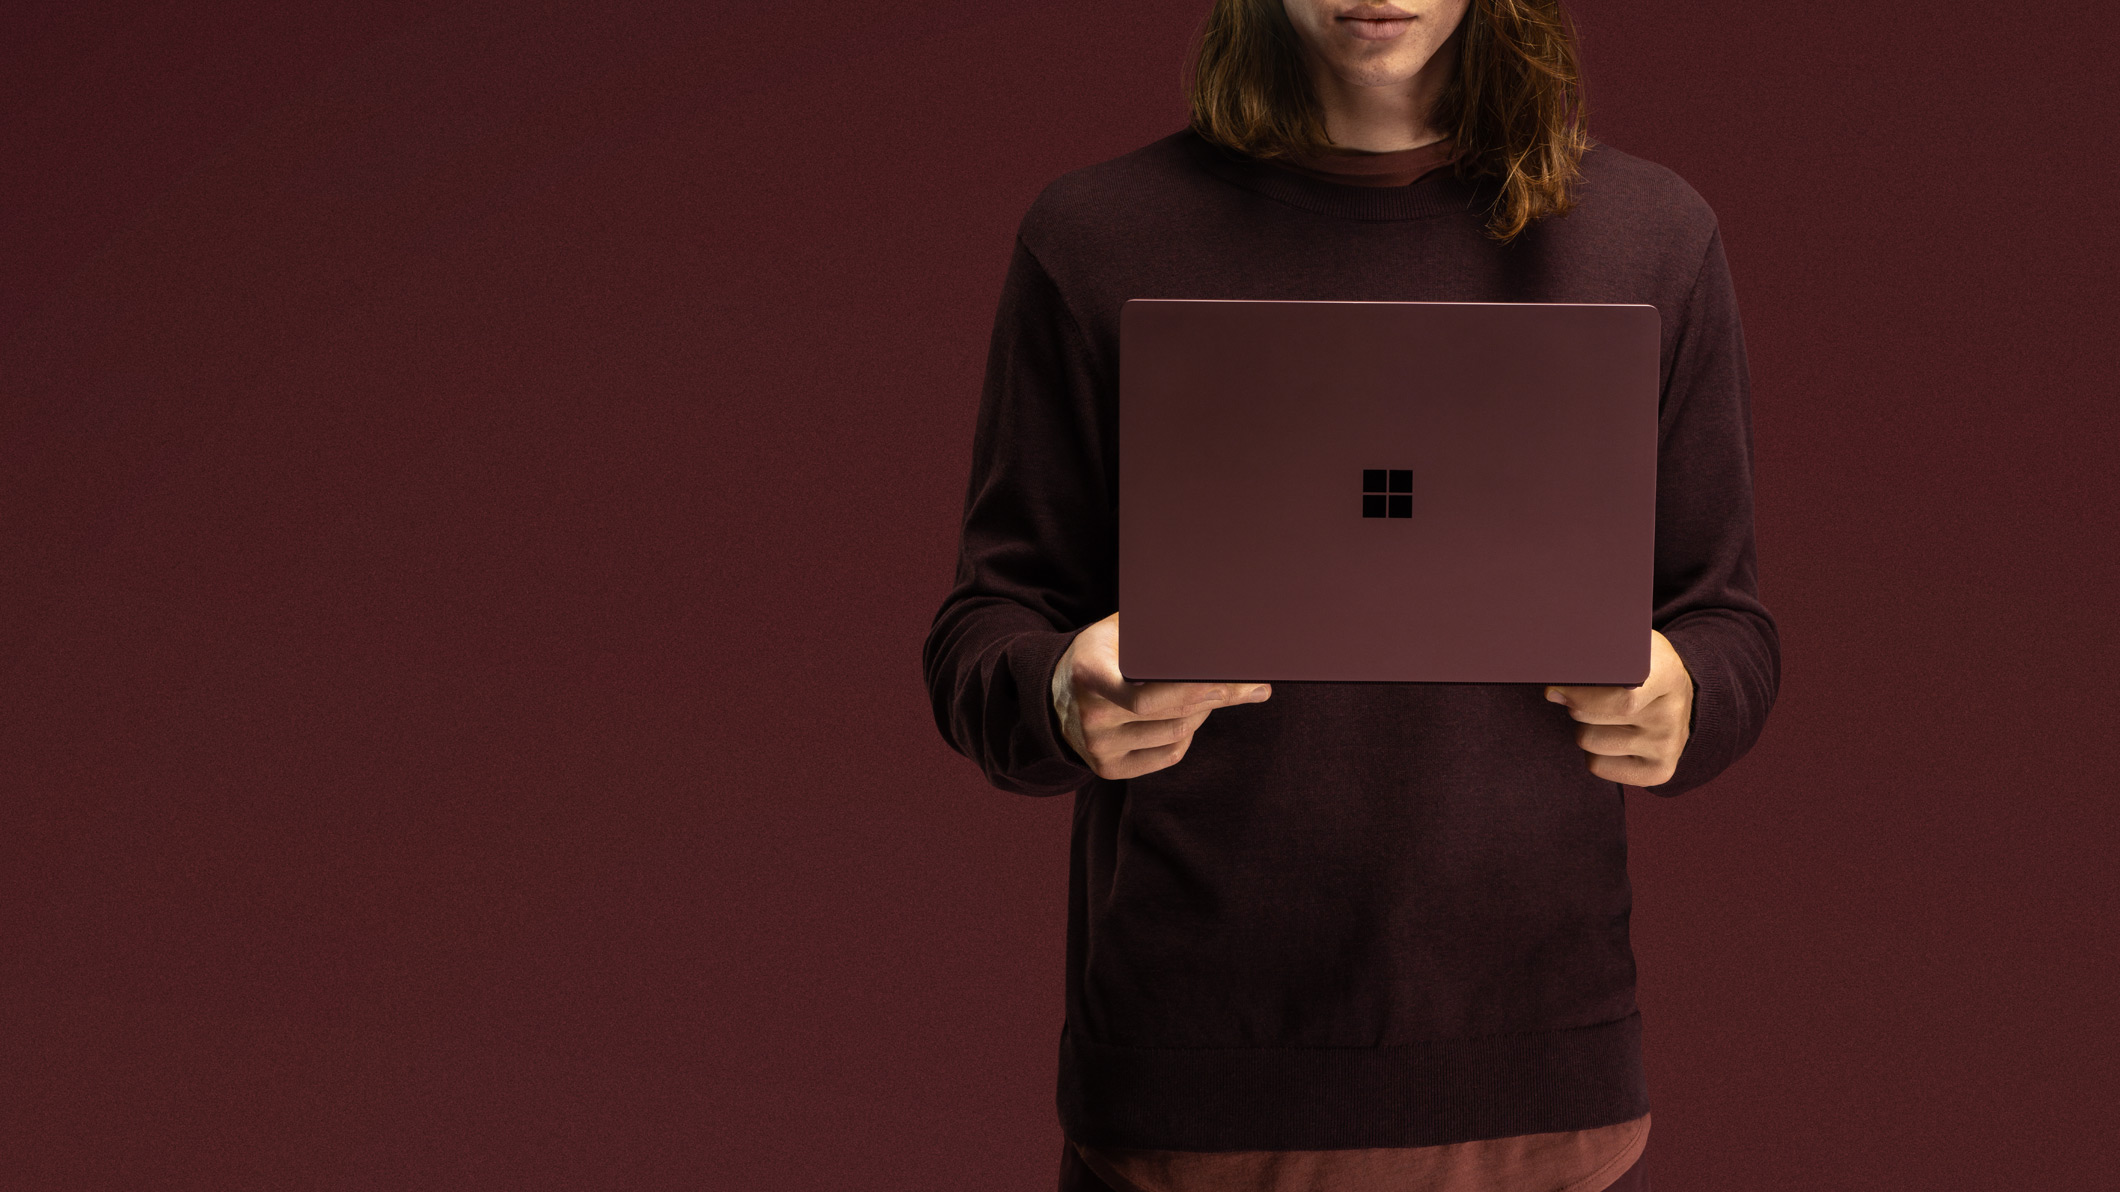 En person i en bordeauxrød sweater står op og holder en åben Surface Laptop 2 i bordeauxrød